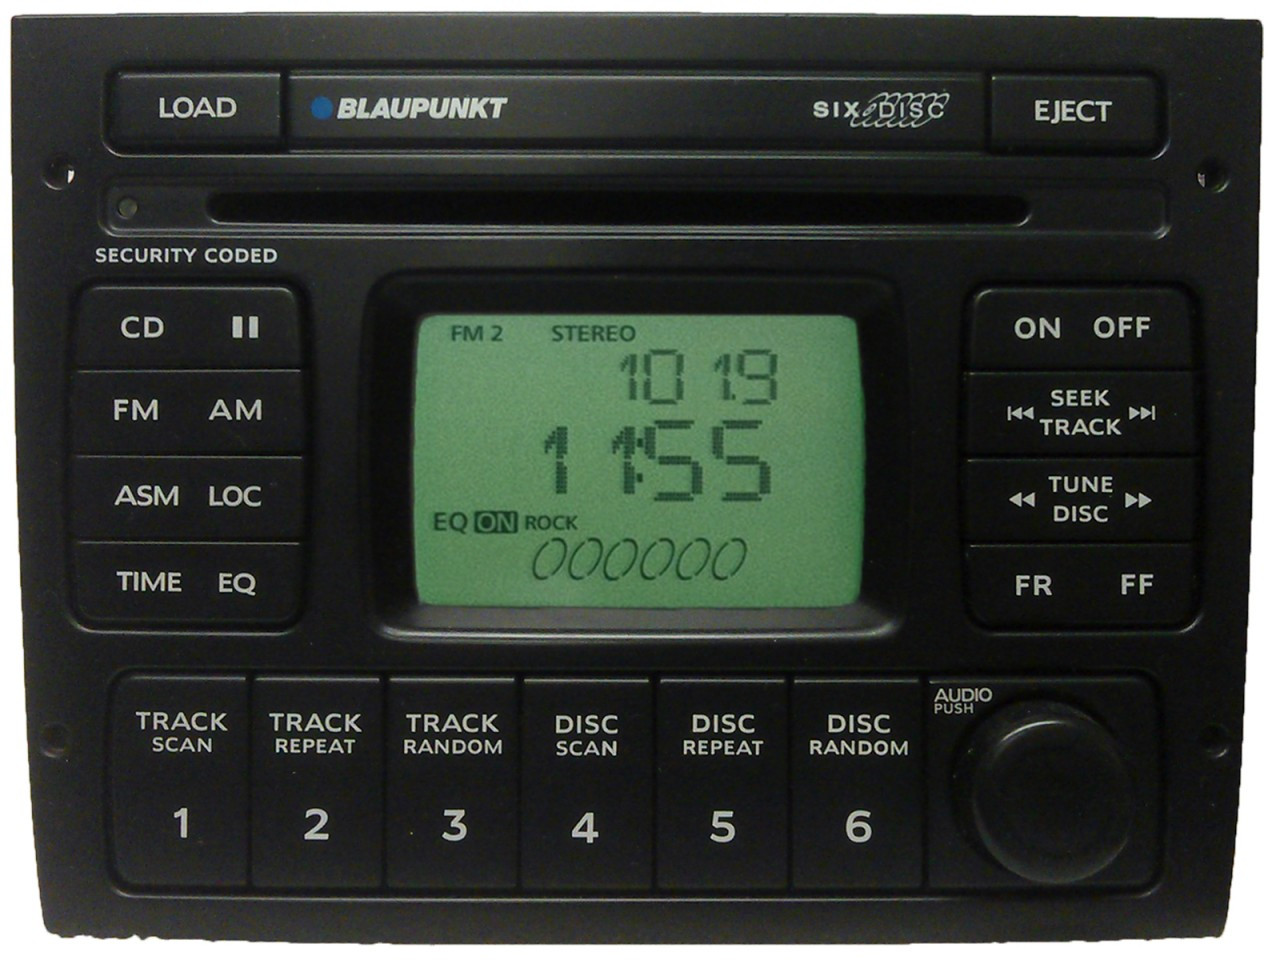 04 05 06 pontiac gto blaupunkt radio 6 disc cd changer. Black Bedroom Furniture Sets. Home Design Ideas